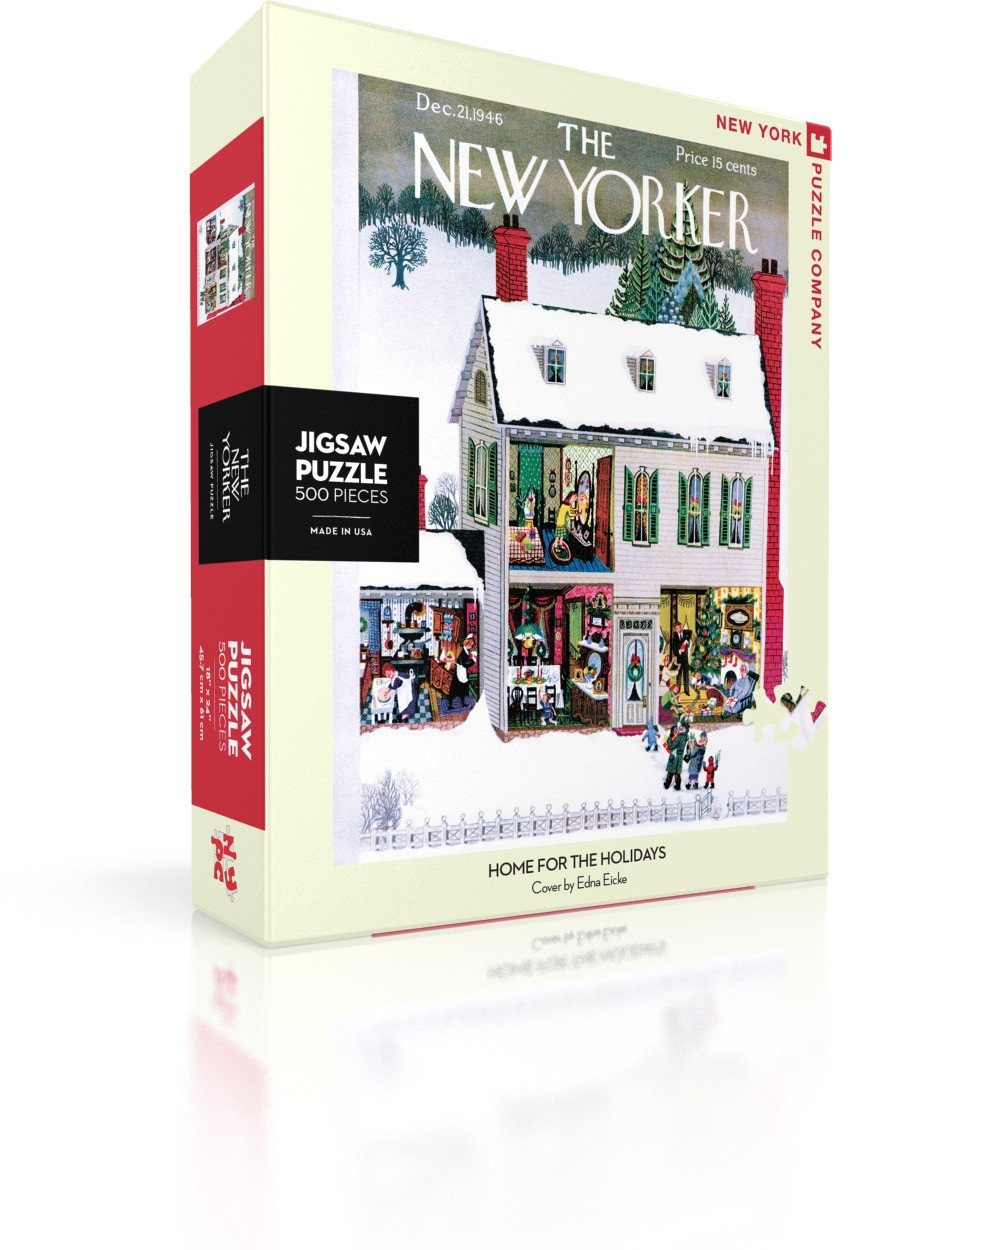 The New Yorker: Home for the Holidays 500pc Puzzle